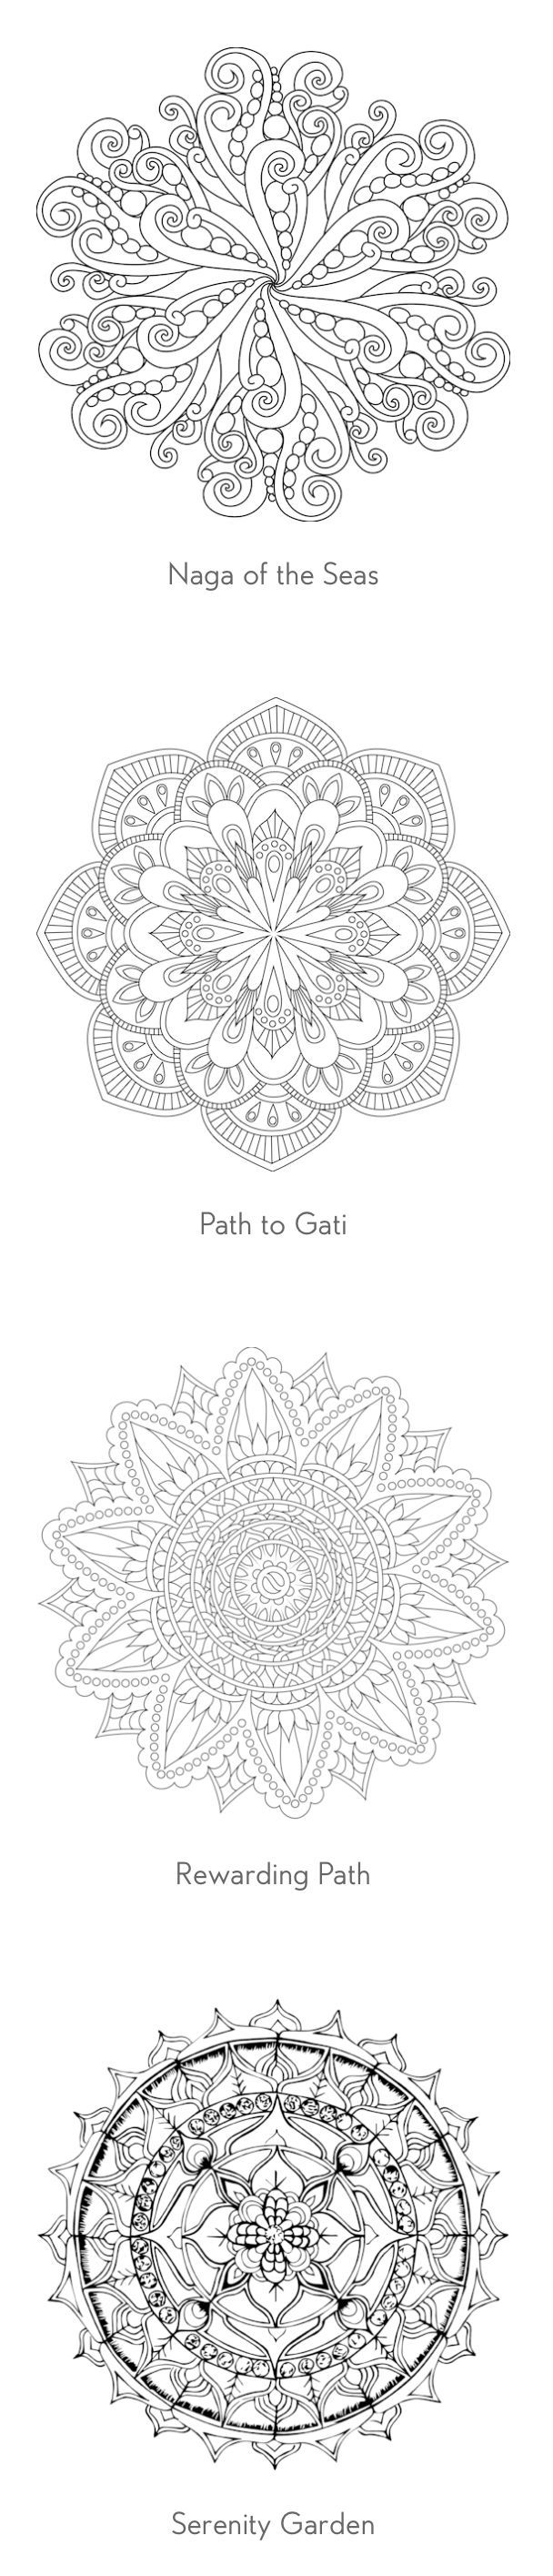 best 25 free coloring pages ideas on pinterest free printable